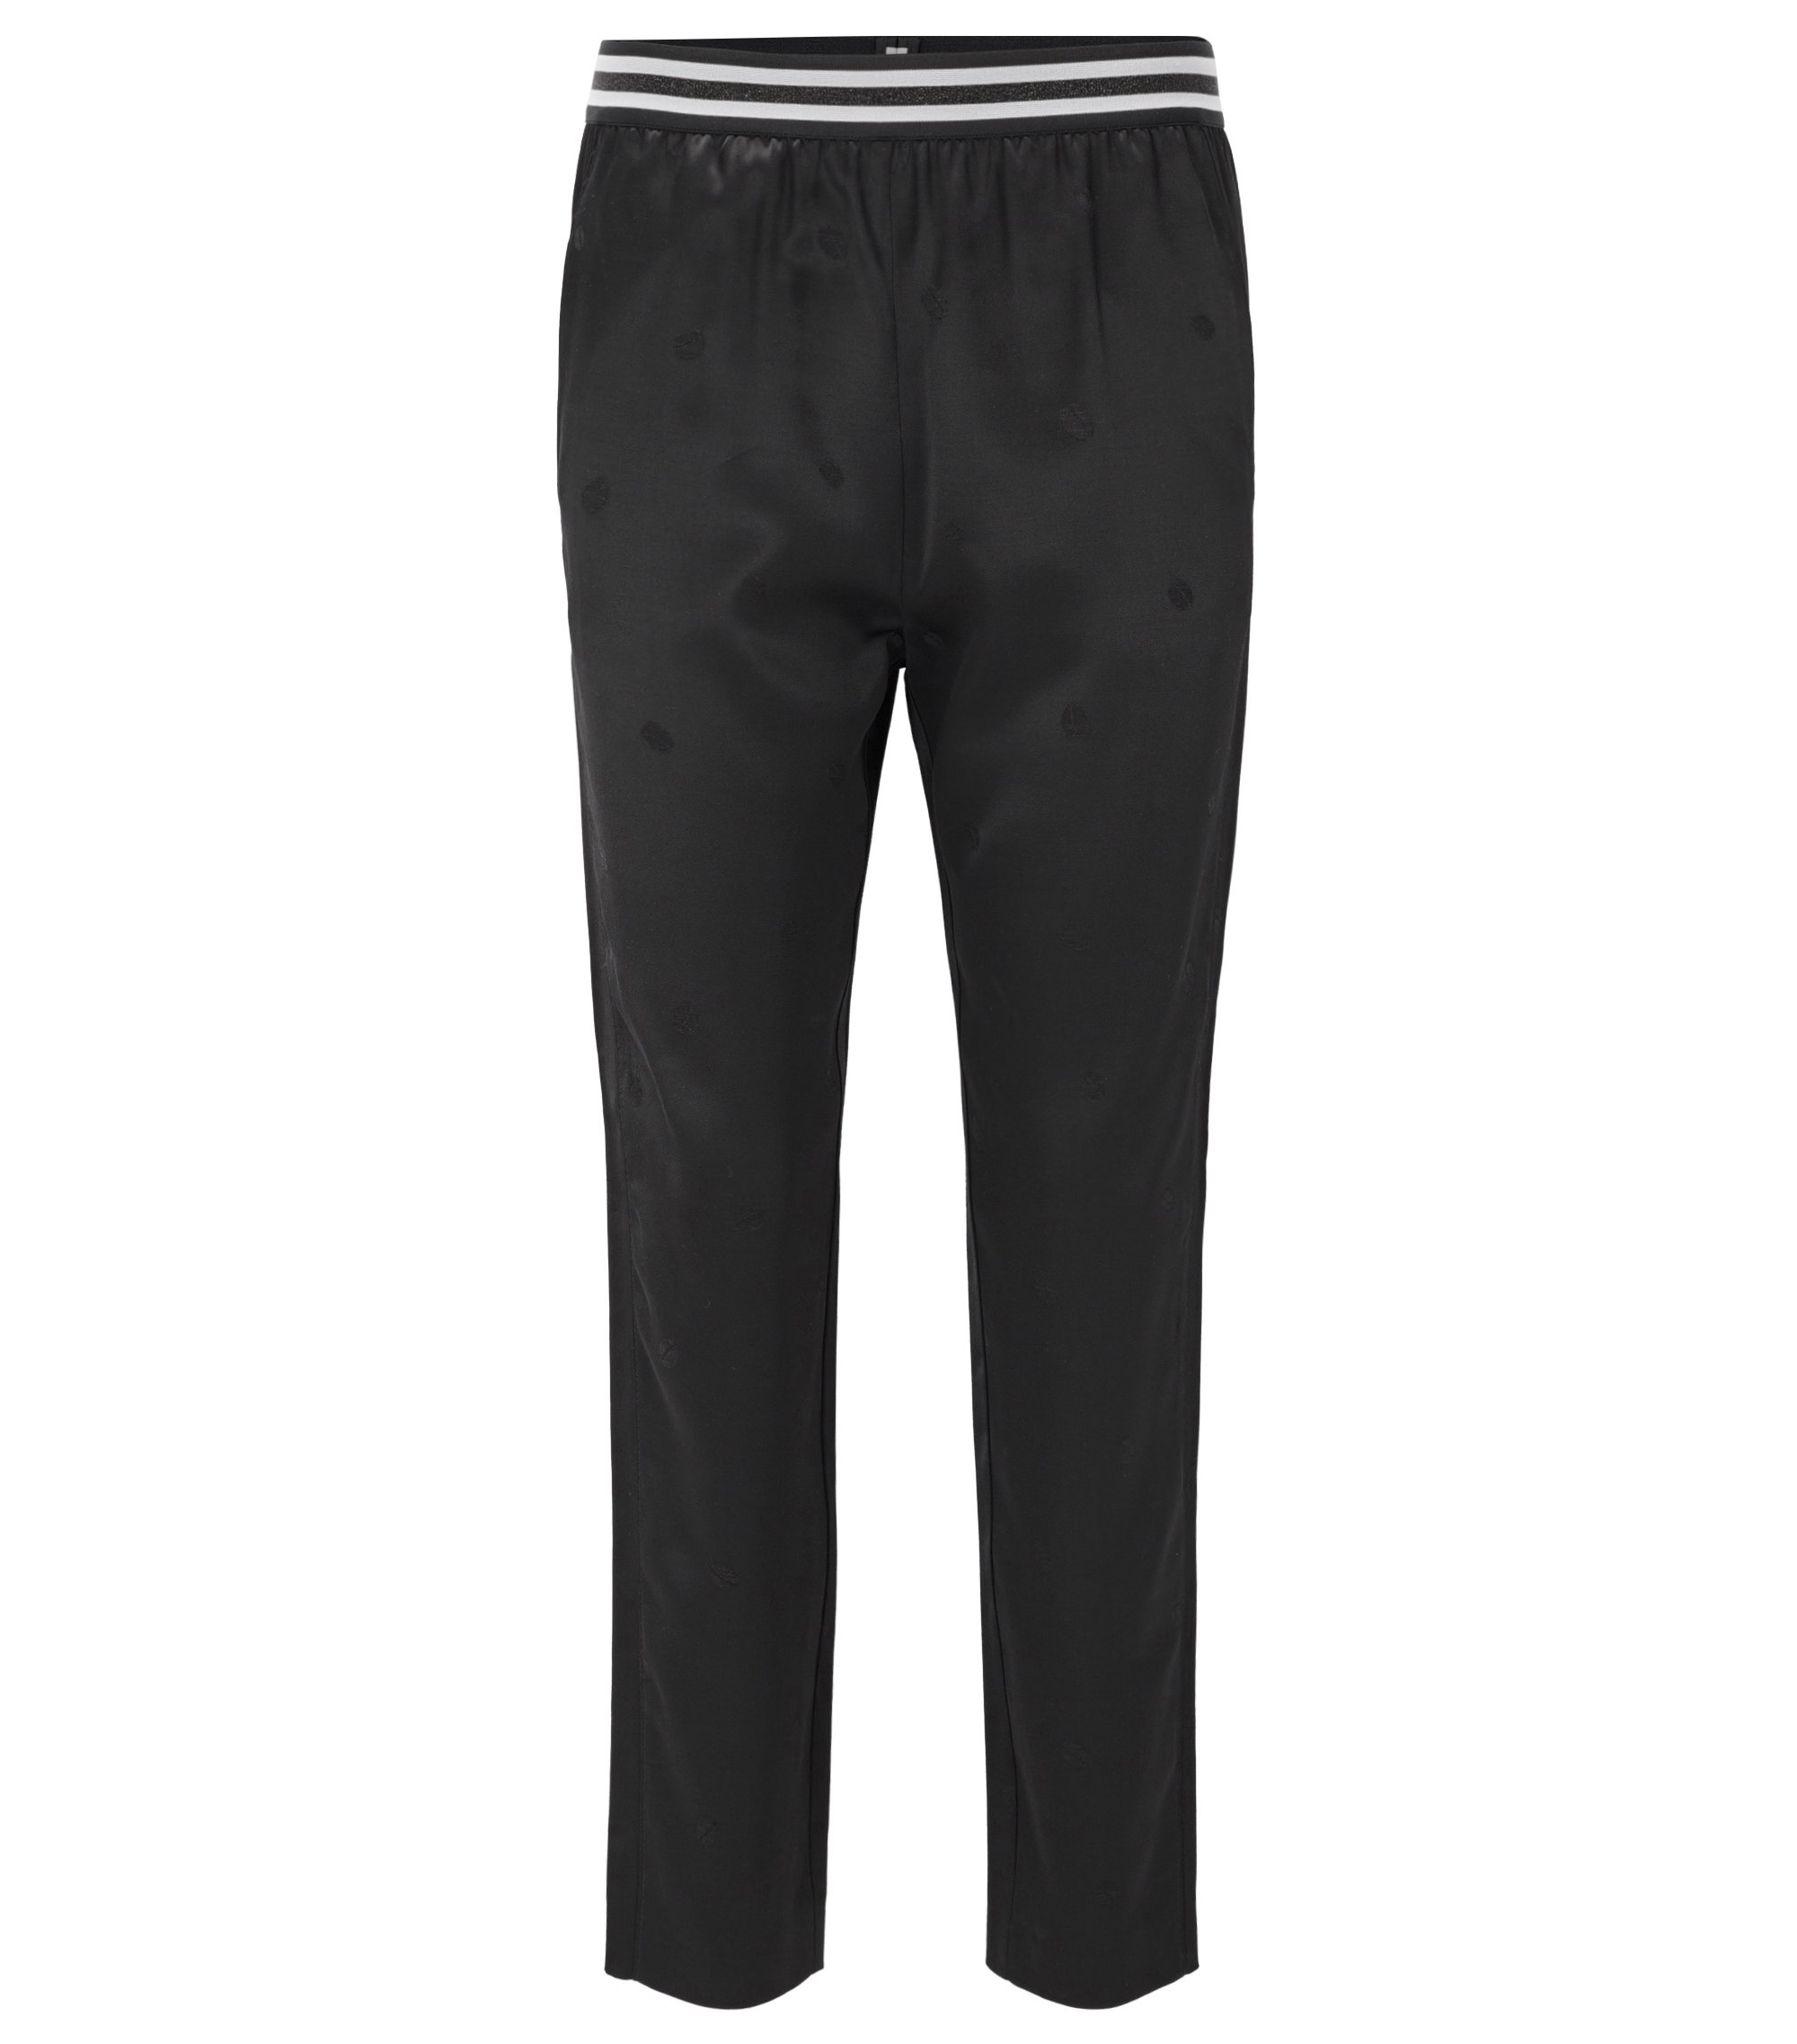 Pantalon Regular Fit en satin à motif jacquard, Noir